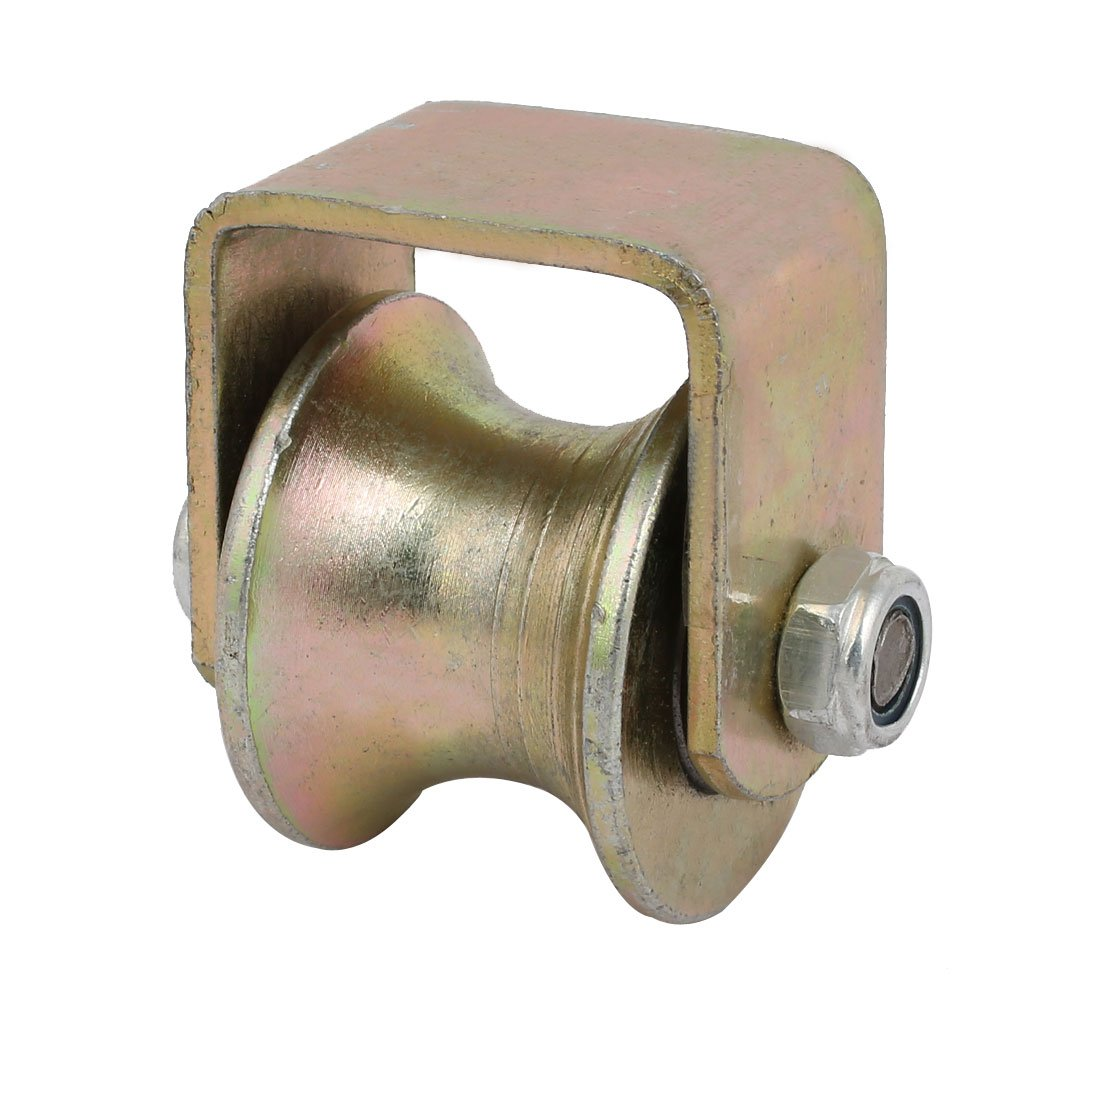 uxcell 2.4-inch Dia 500KG Capacity U Groove Rigid Caster Wheel for Industrial Machines